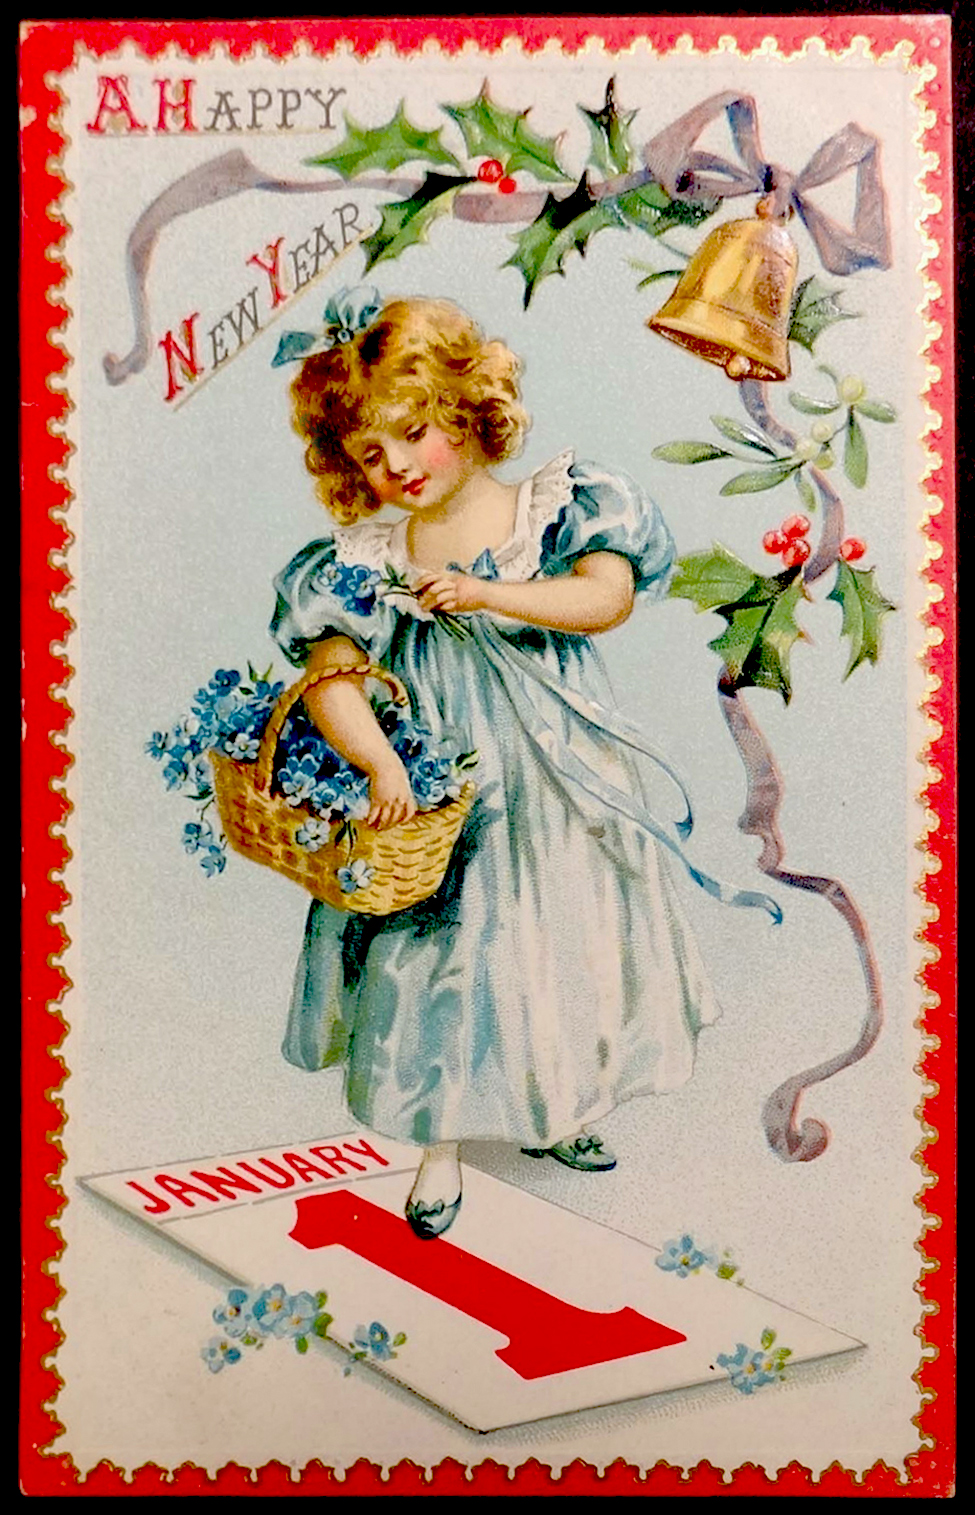 My Fanciful Muse: Happy New Year